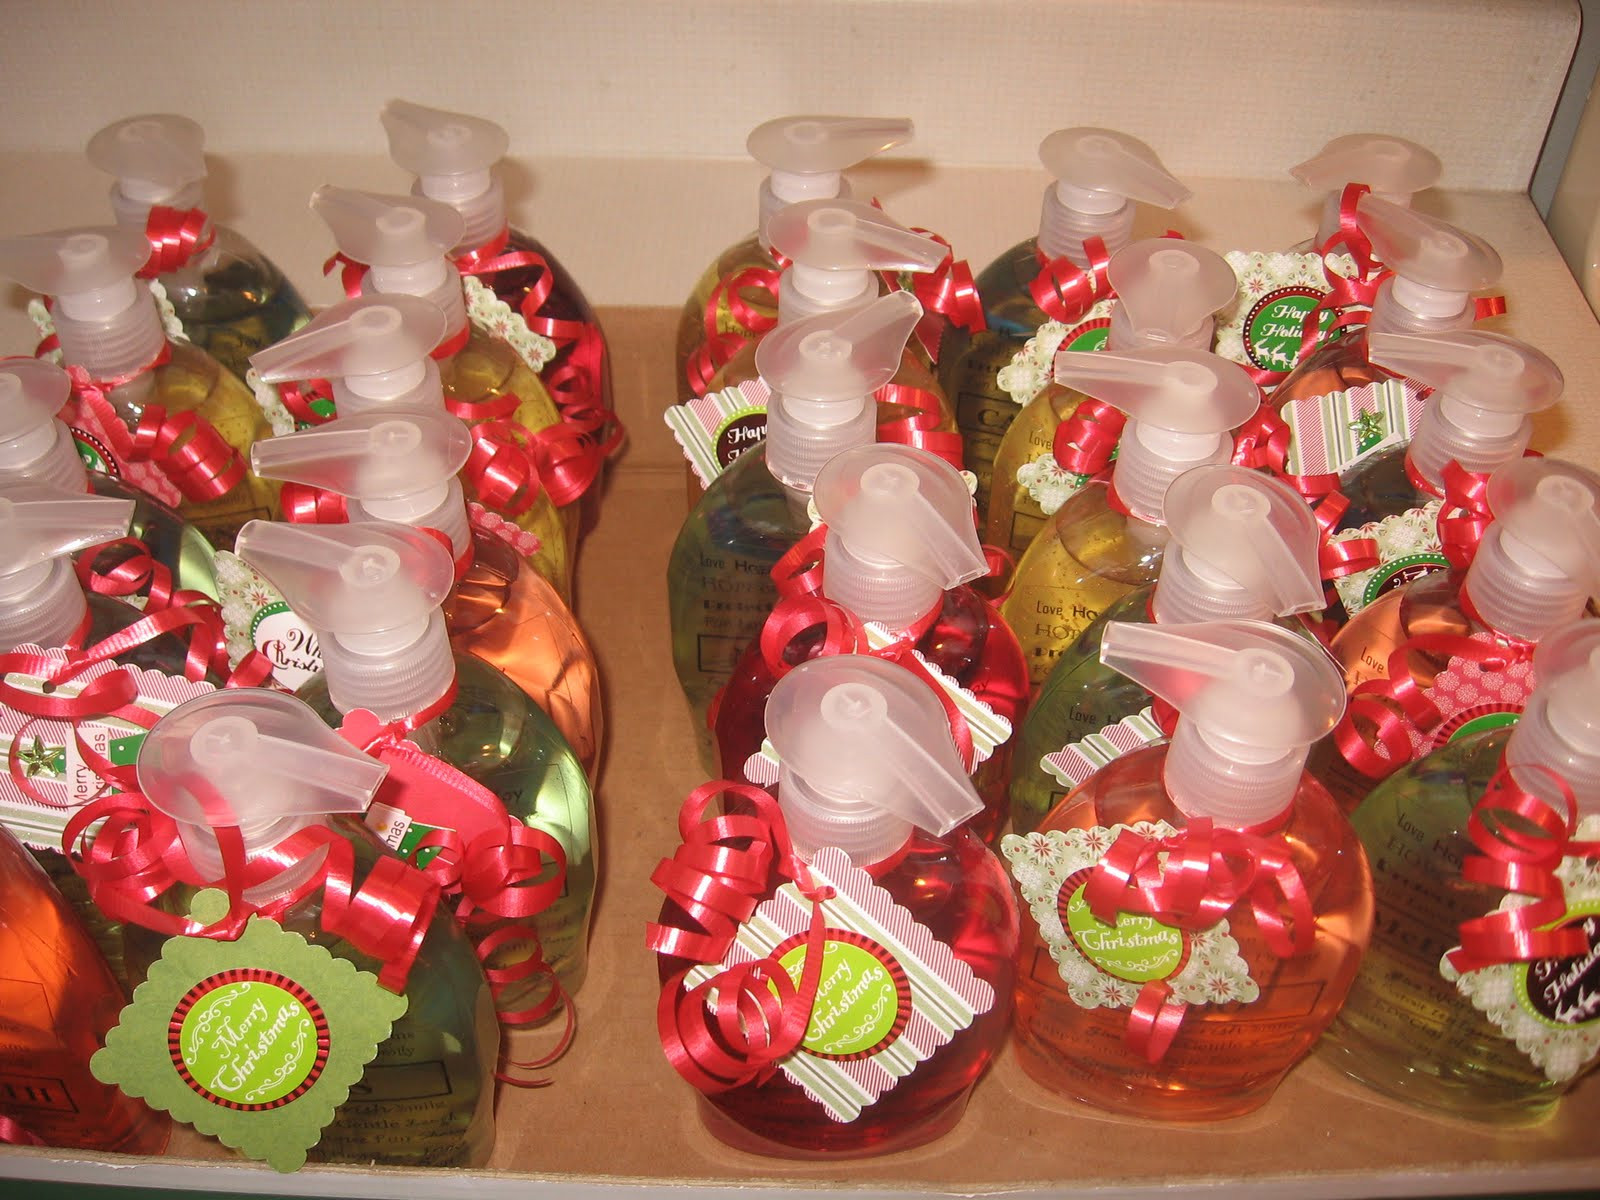 Best ideas about Co Worker Gift Ideas . Save or Pin Dandelions and Dust Bunnies Co worker Neighbor Gift Idea Now.